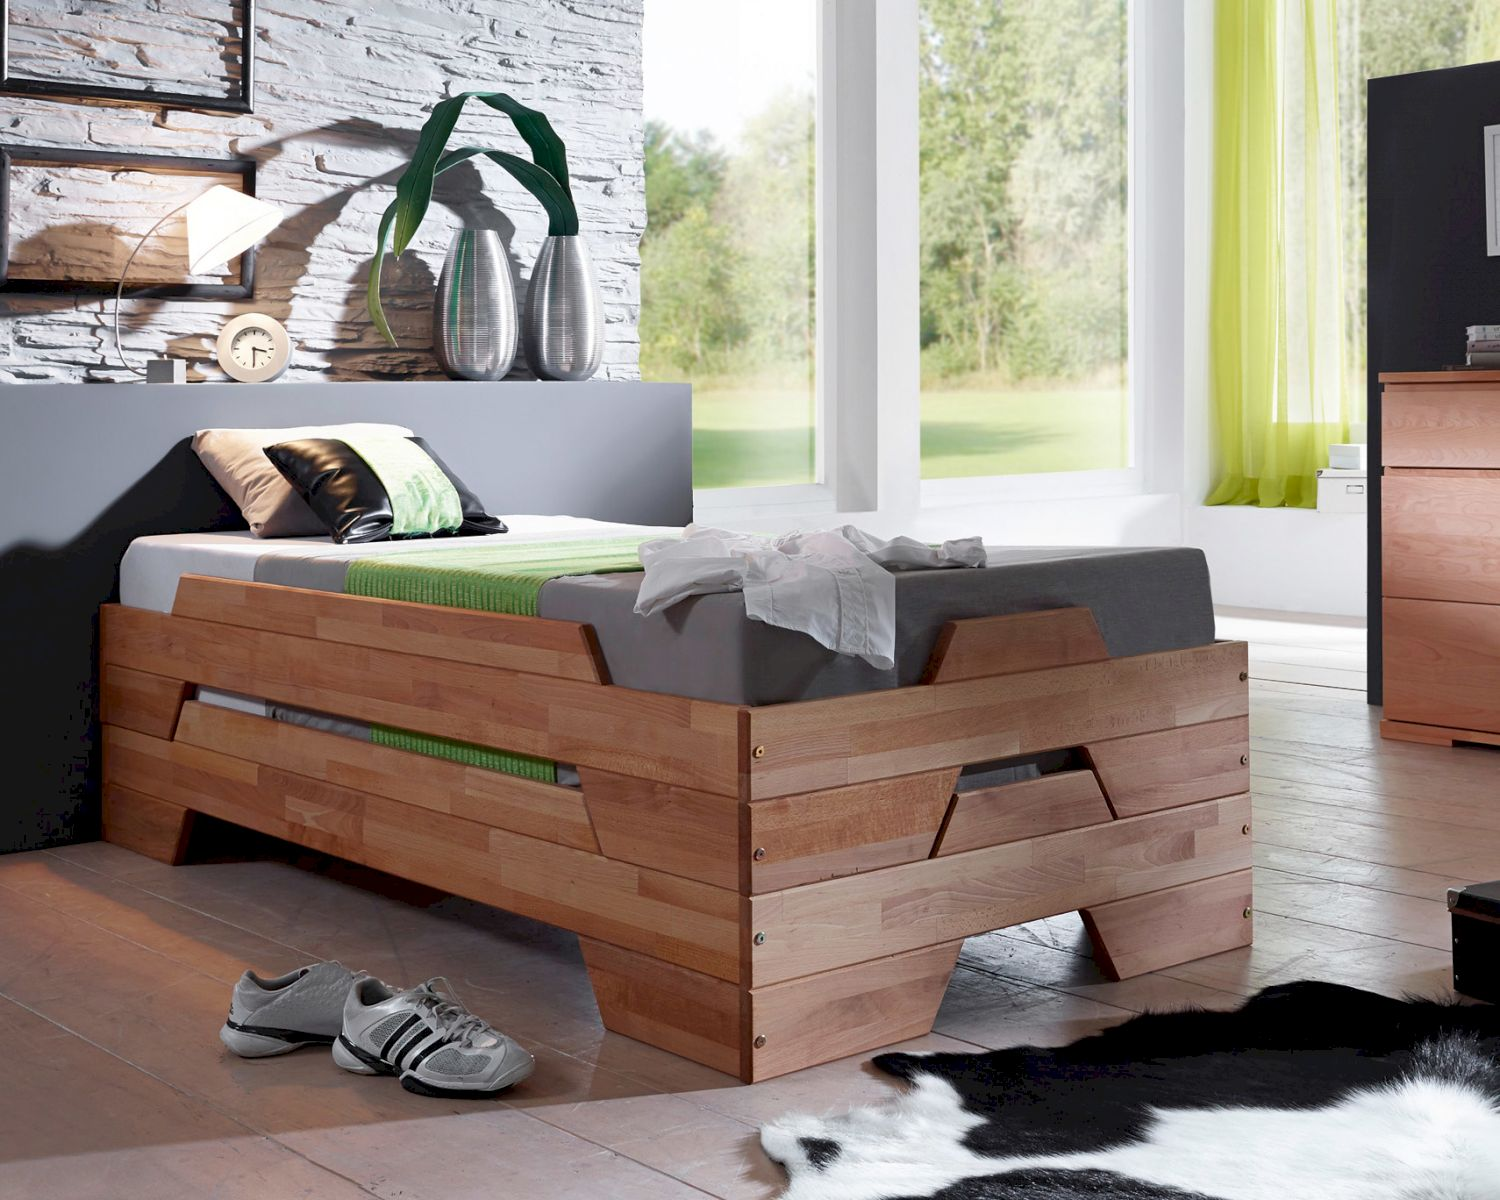 massivholz bett stapelliege sophie kaufen. Black Bedroom Furniture Sets. Home Design Ideas